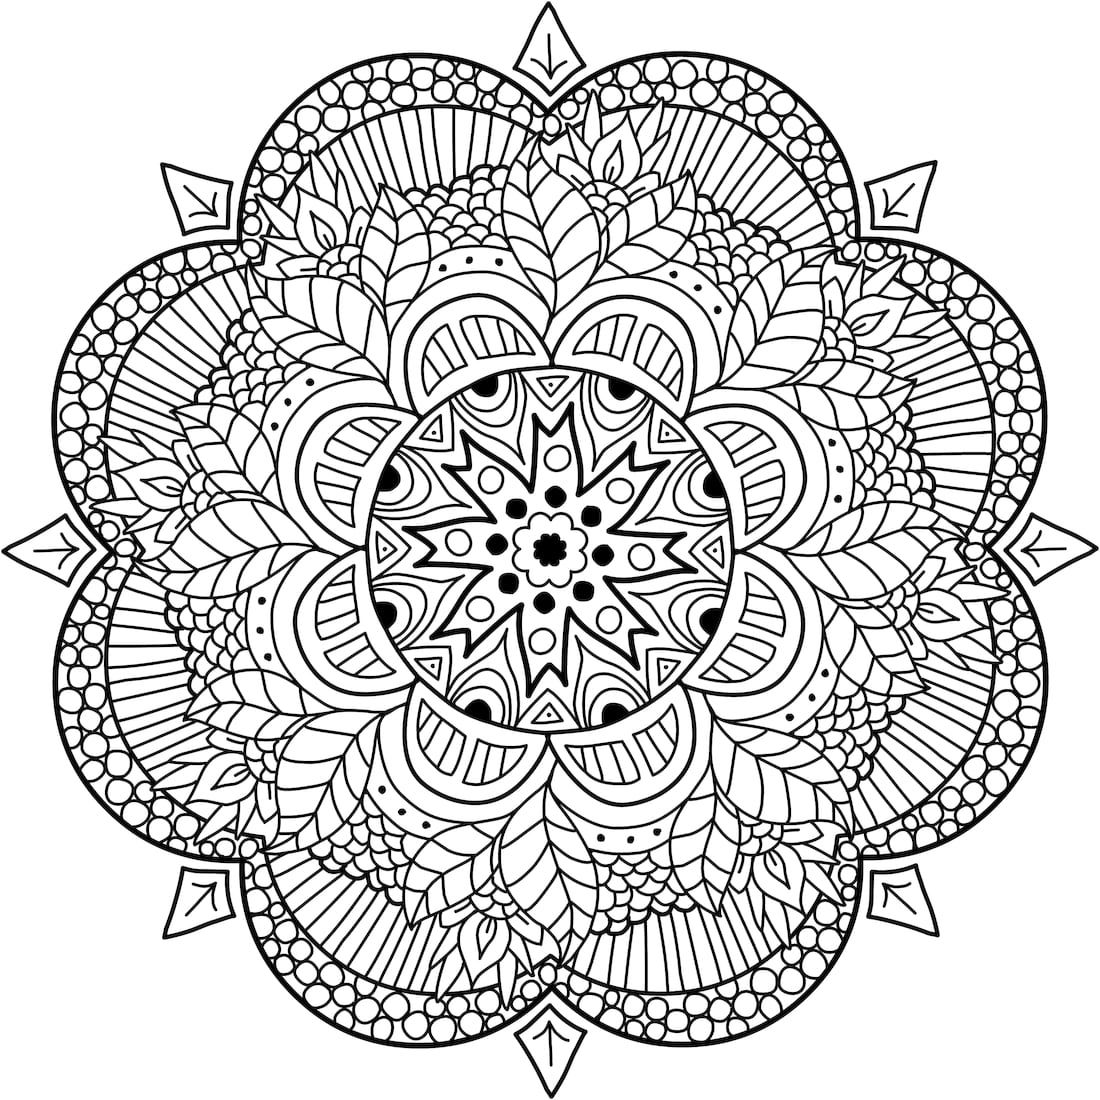 R kelly coloring pages - This Is Loi Krathong A Free Printable Coloring Page From Mondaymandala Com